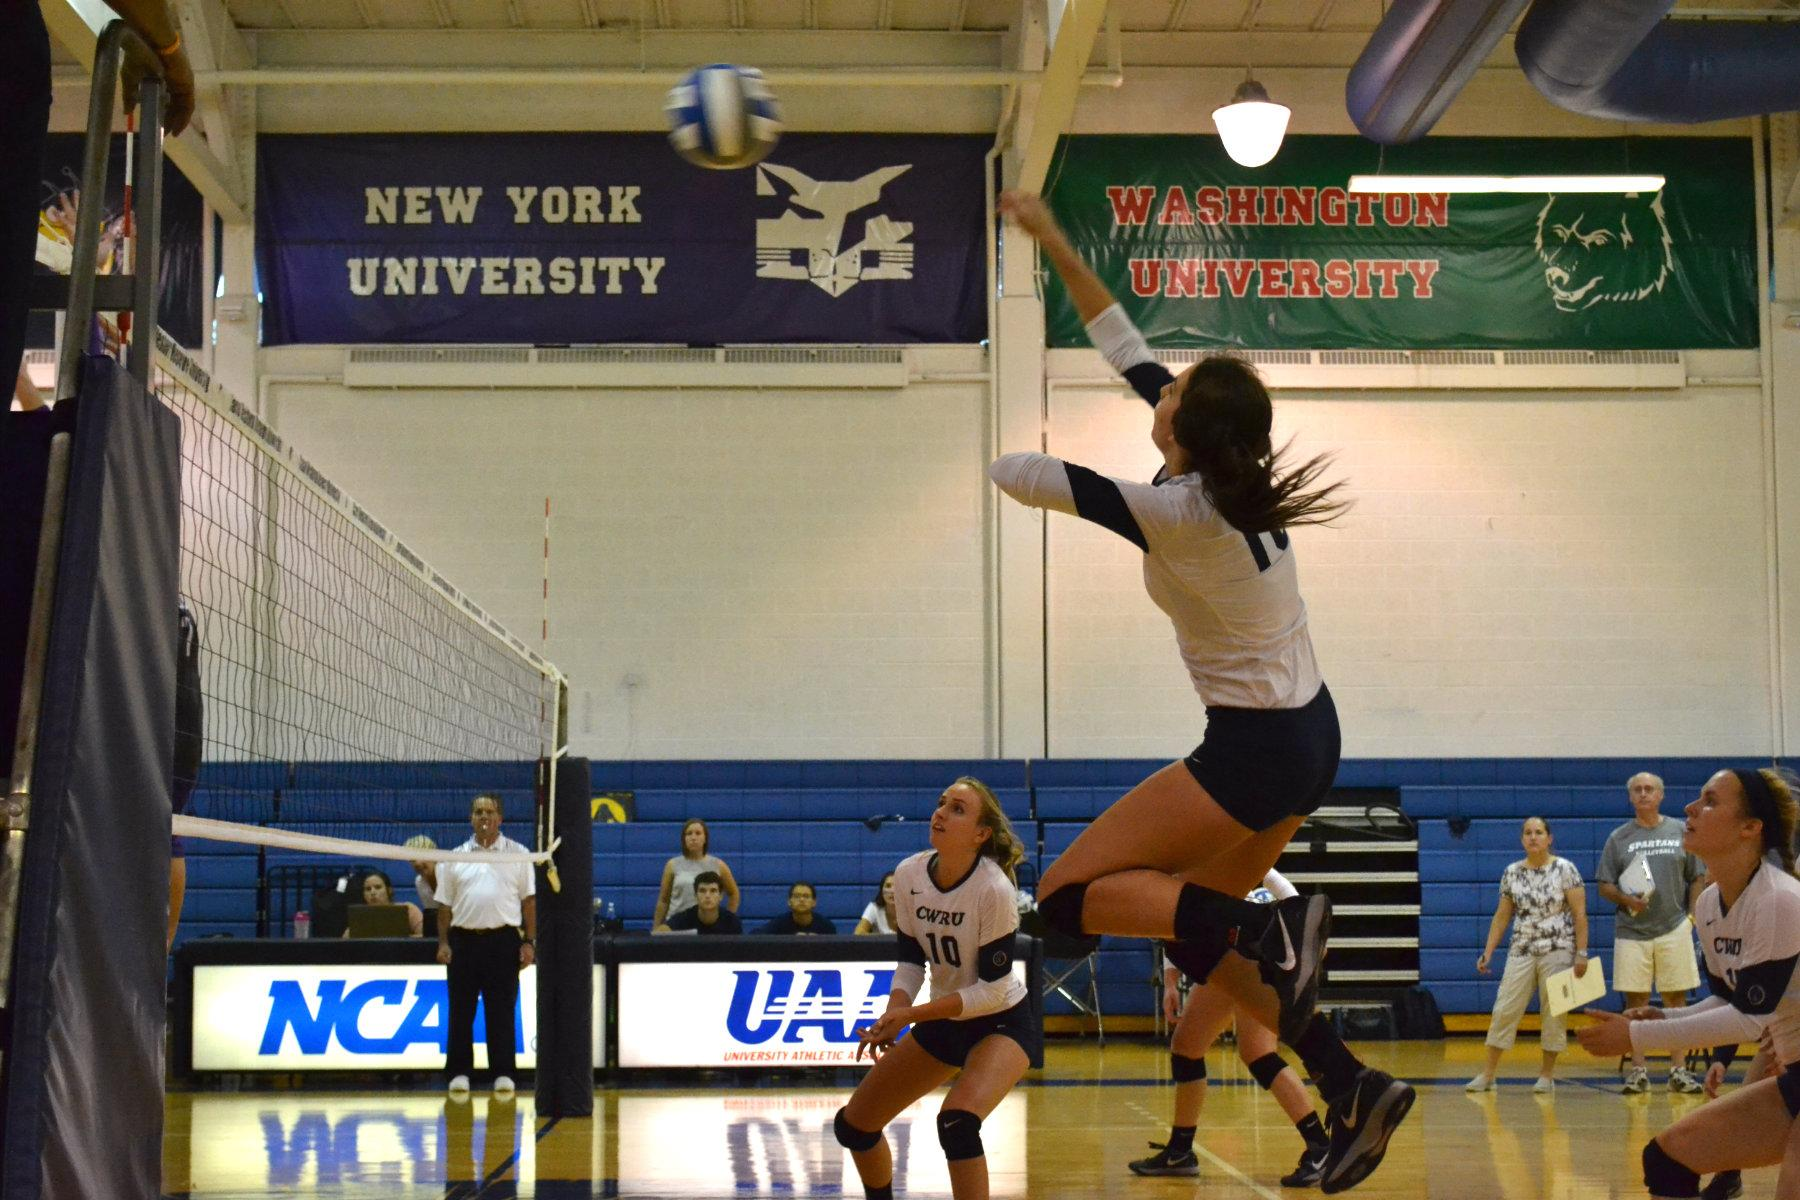 Marian Barton fires off a spike in the CWRU win over Mt. Union Wednesday night as the Spartans continue to stay undefeated on the season.